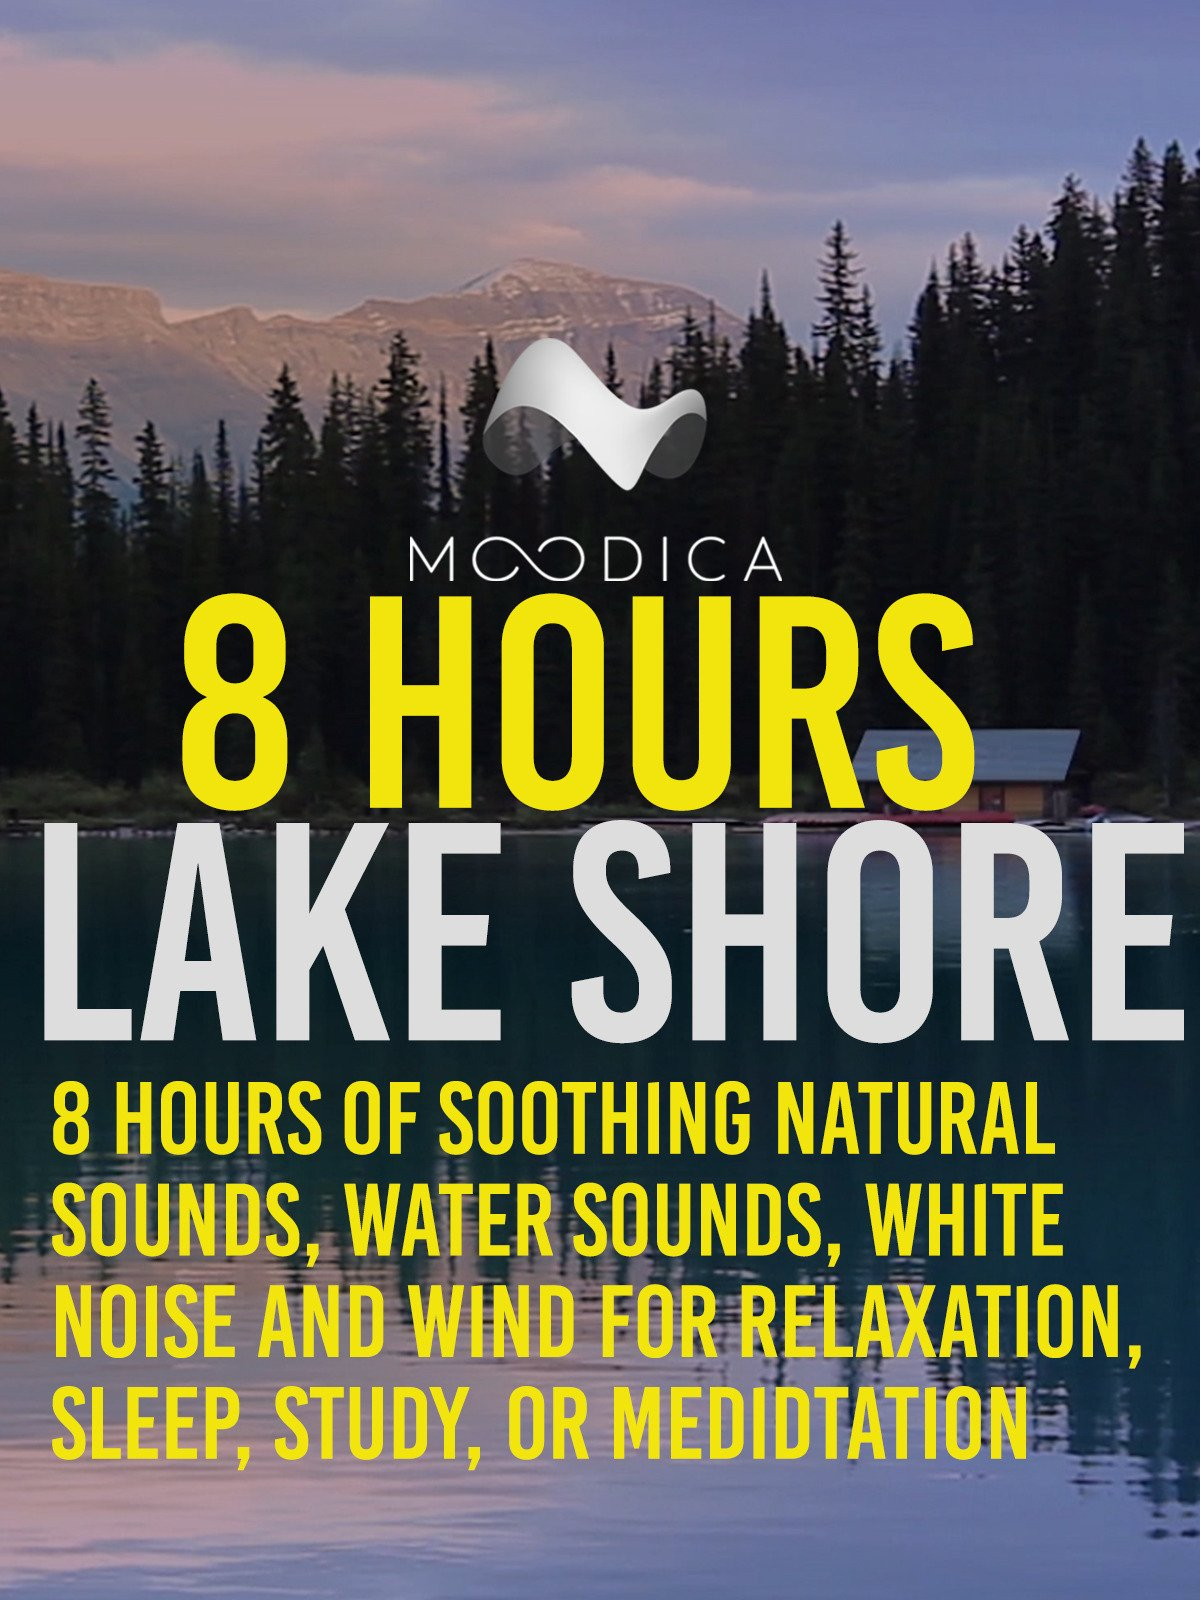 8 hours: Lake Shore: 8 Hours of Soothing Natural Sounds, Water Sounds, White Noise and Wind for Relaxation, Sleep, Study, or Medidtation